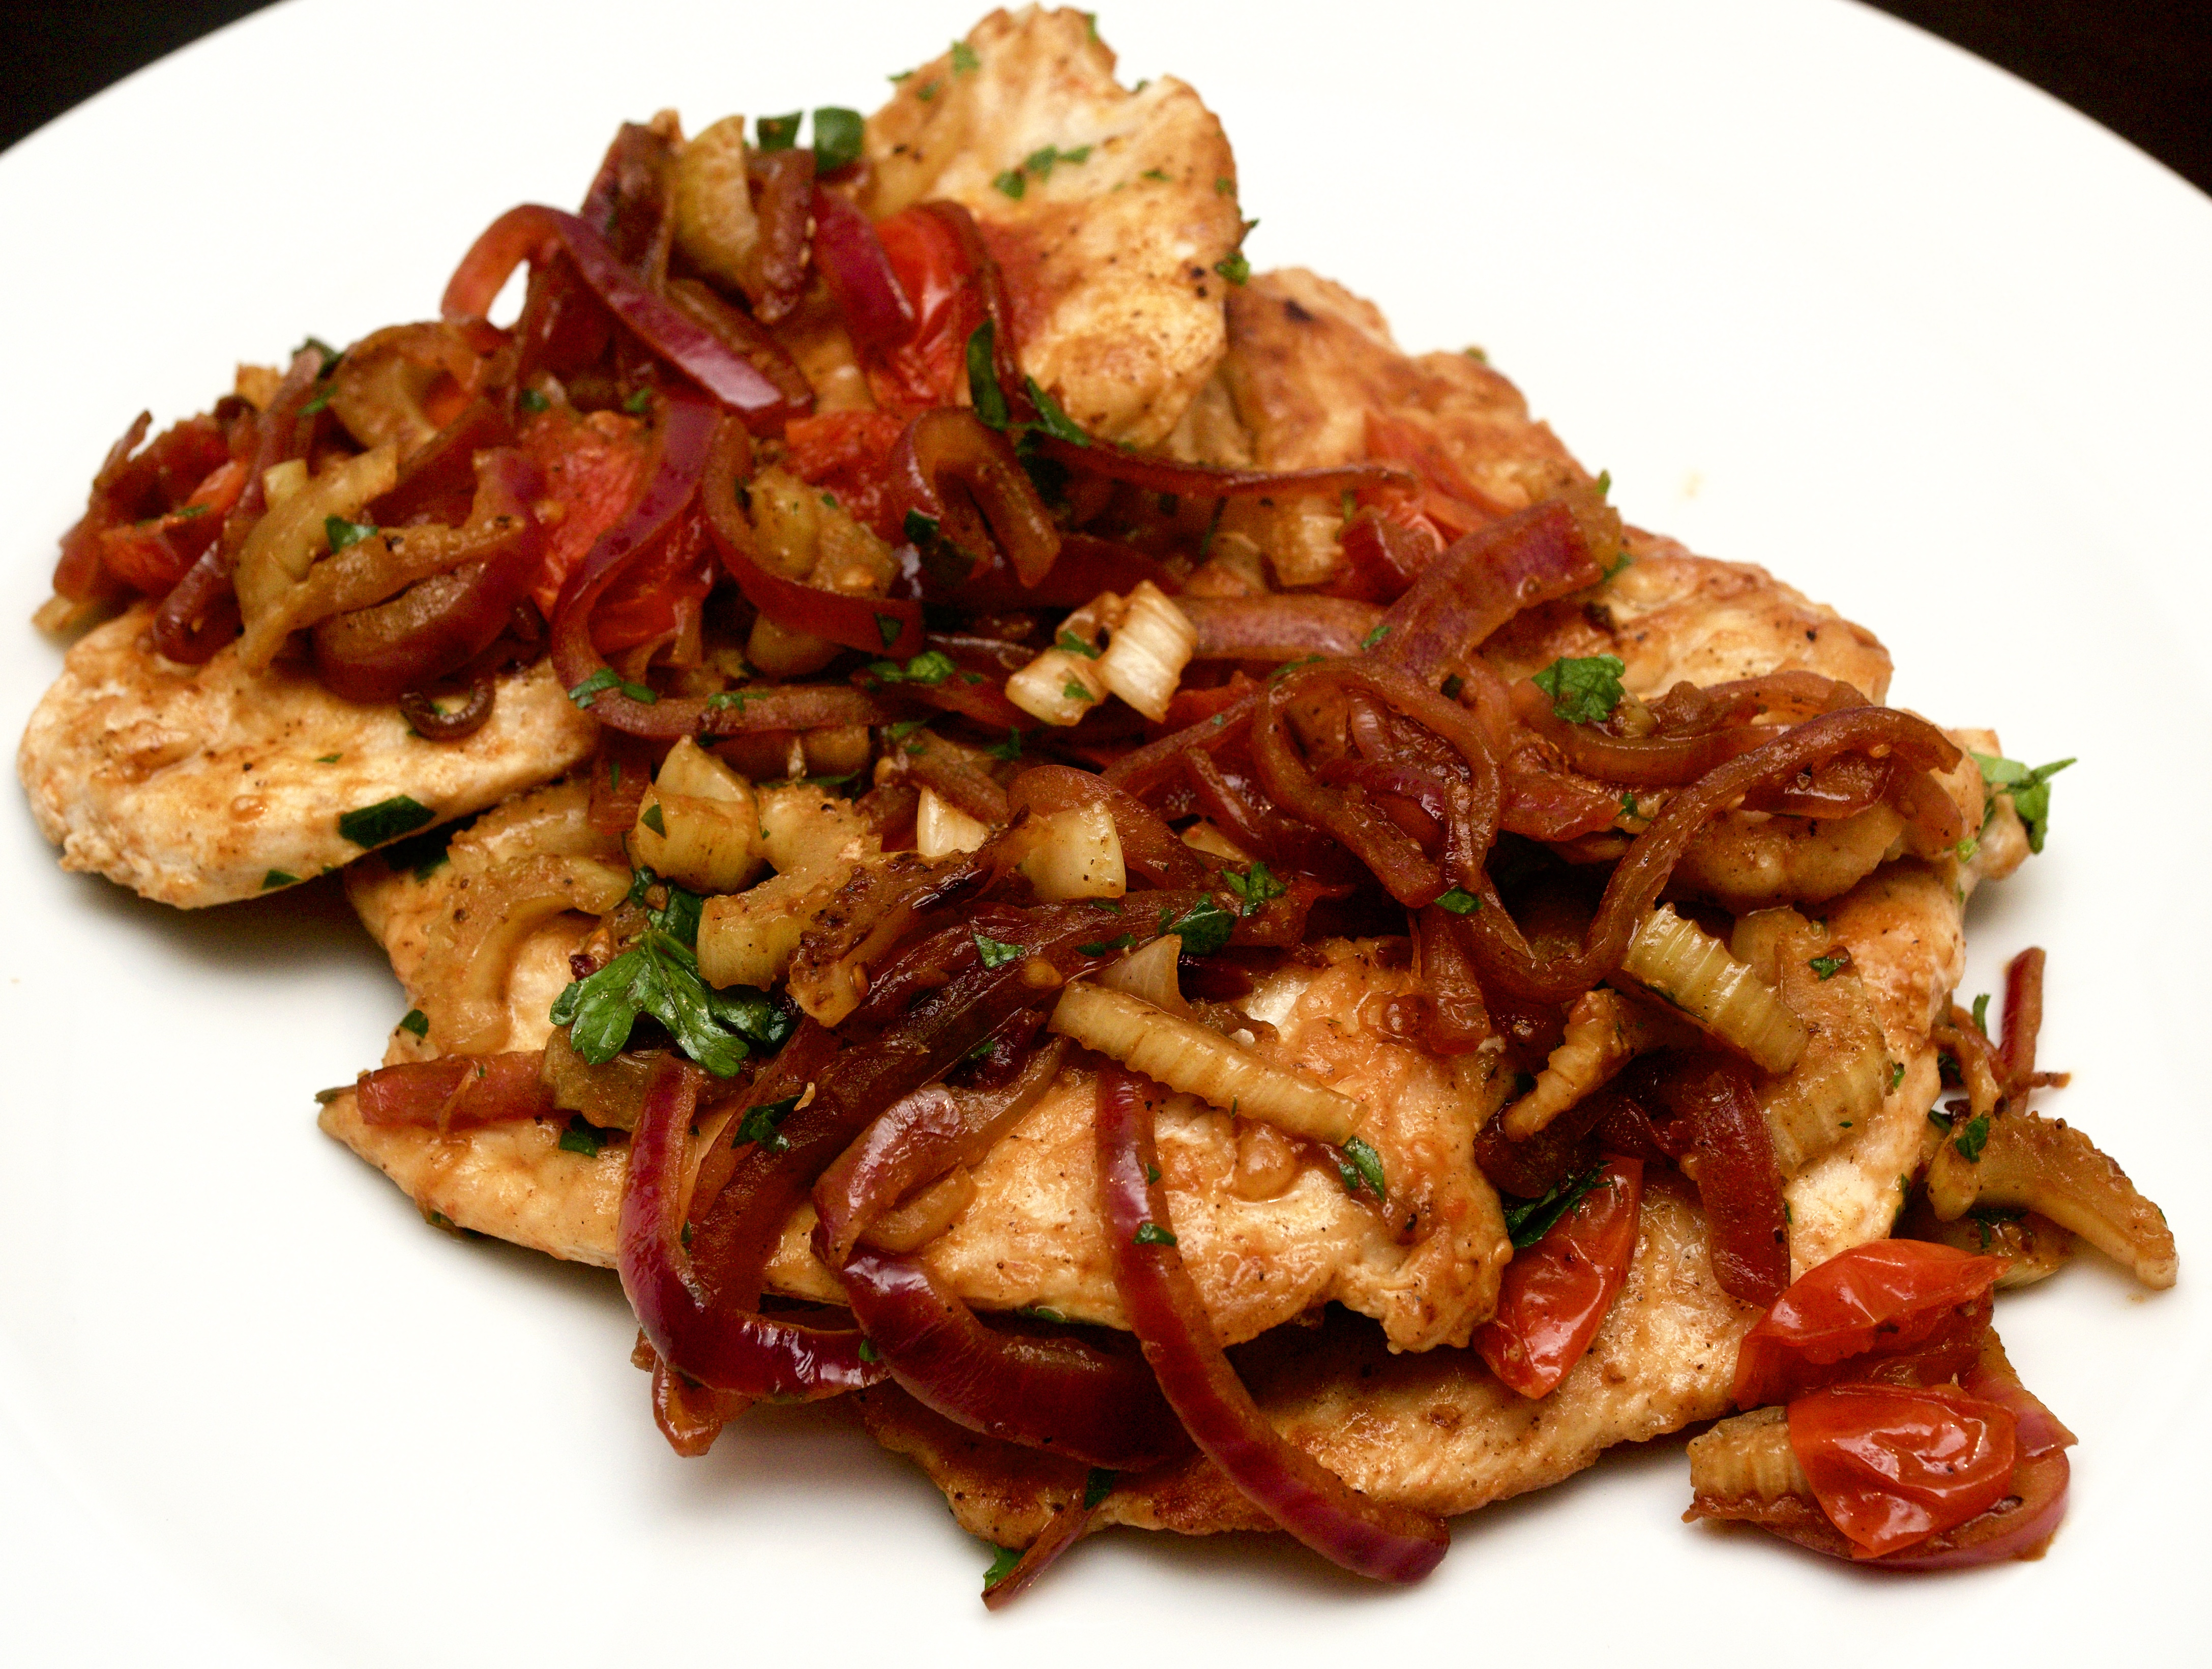 Chicken with an agrodulce sauce